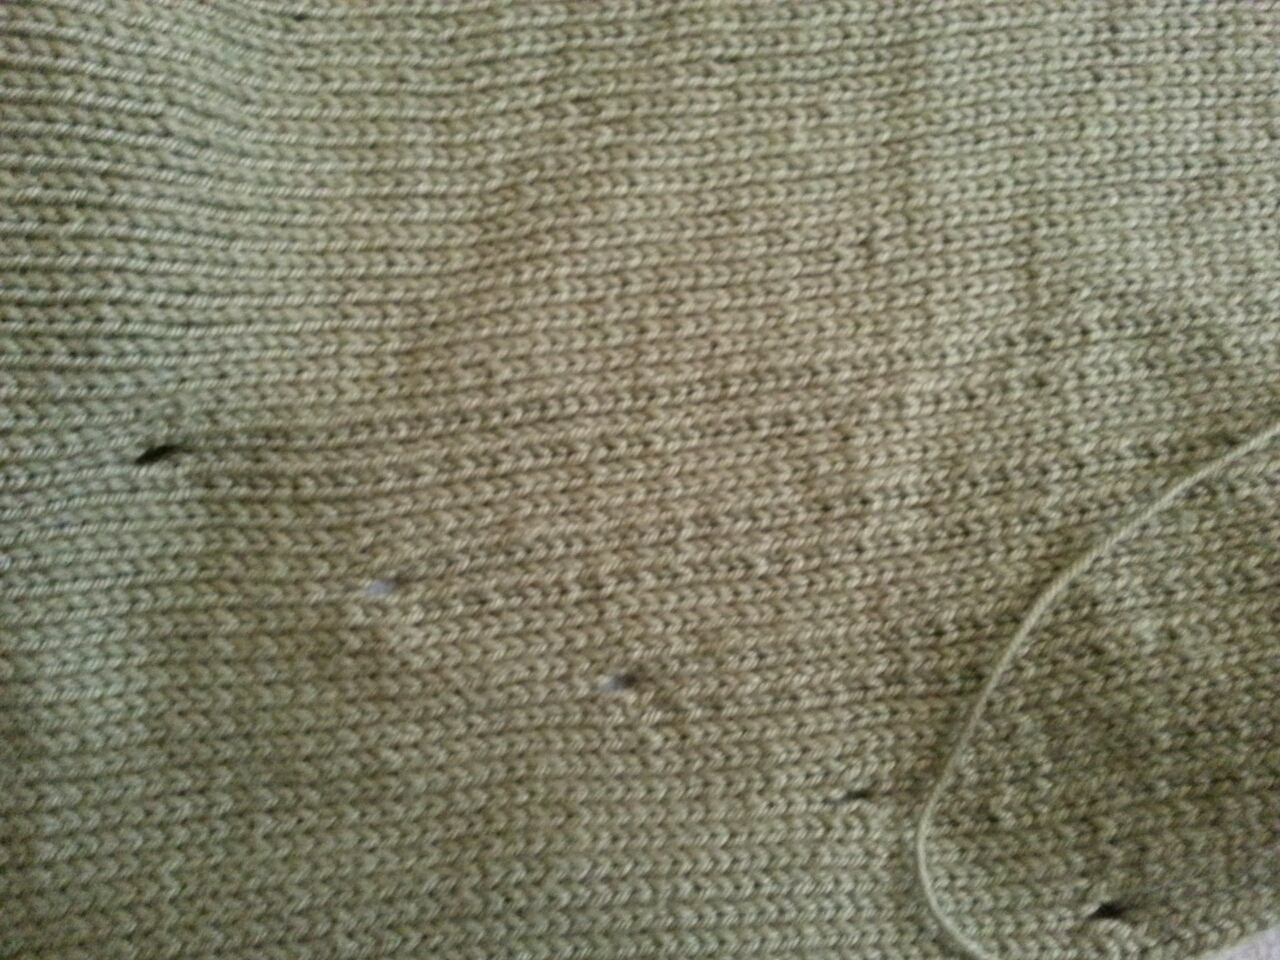 The eyelets showing where the dropped stitches will be on the back